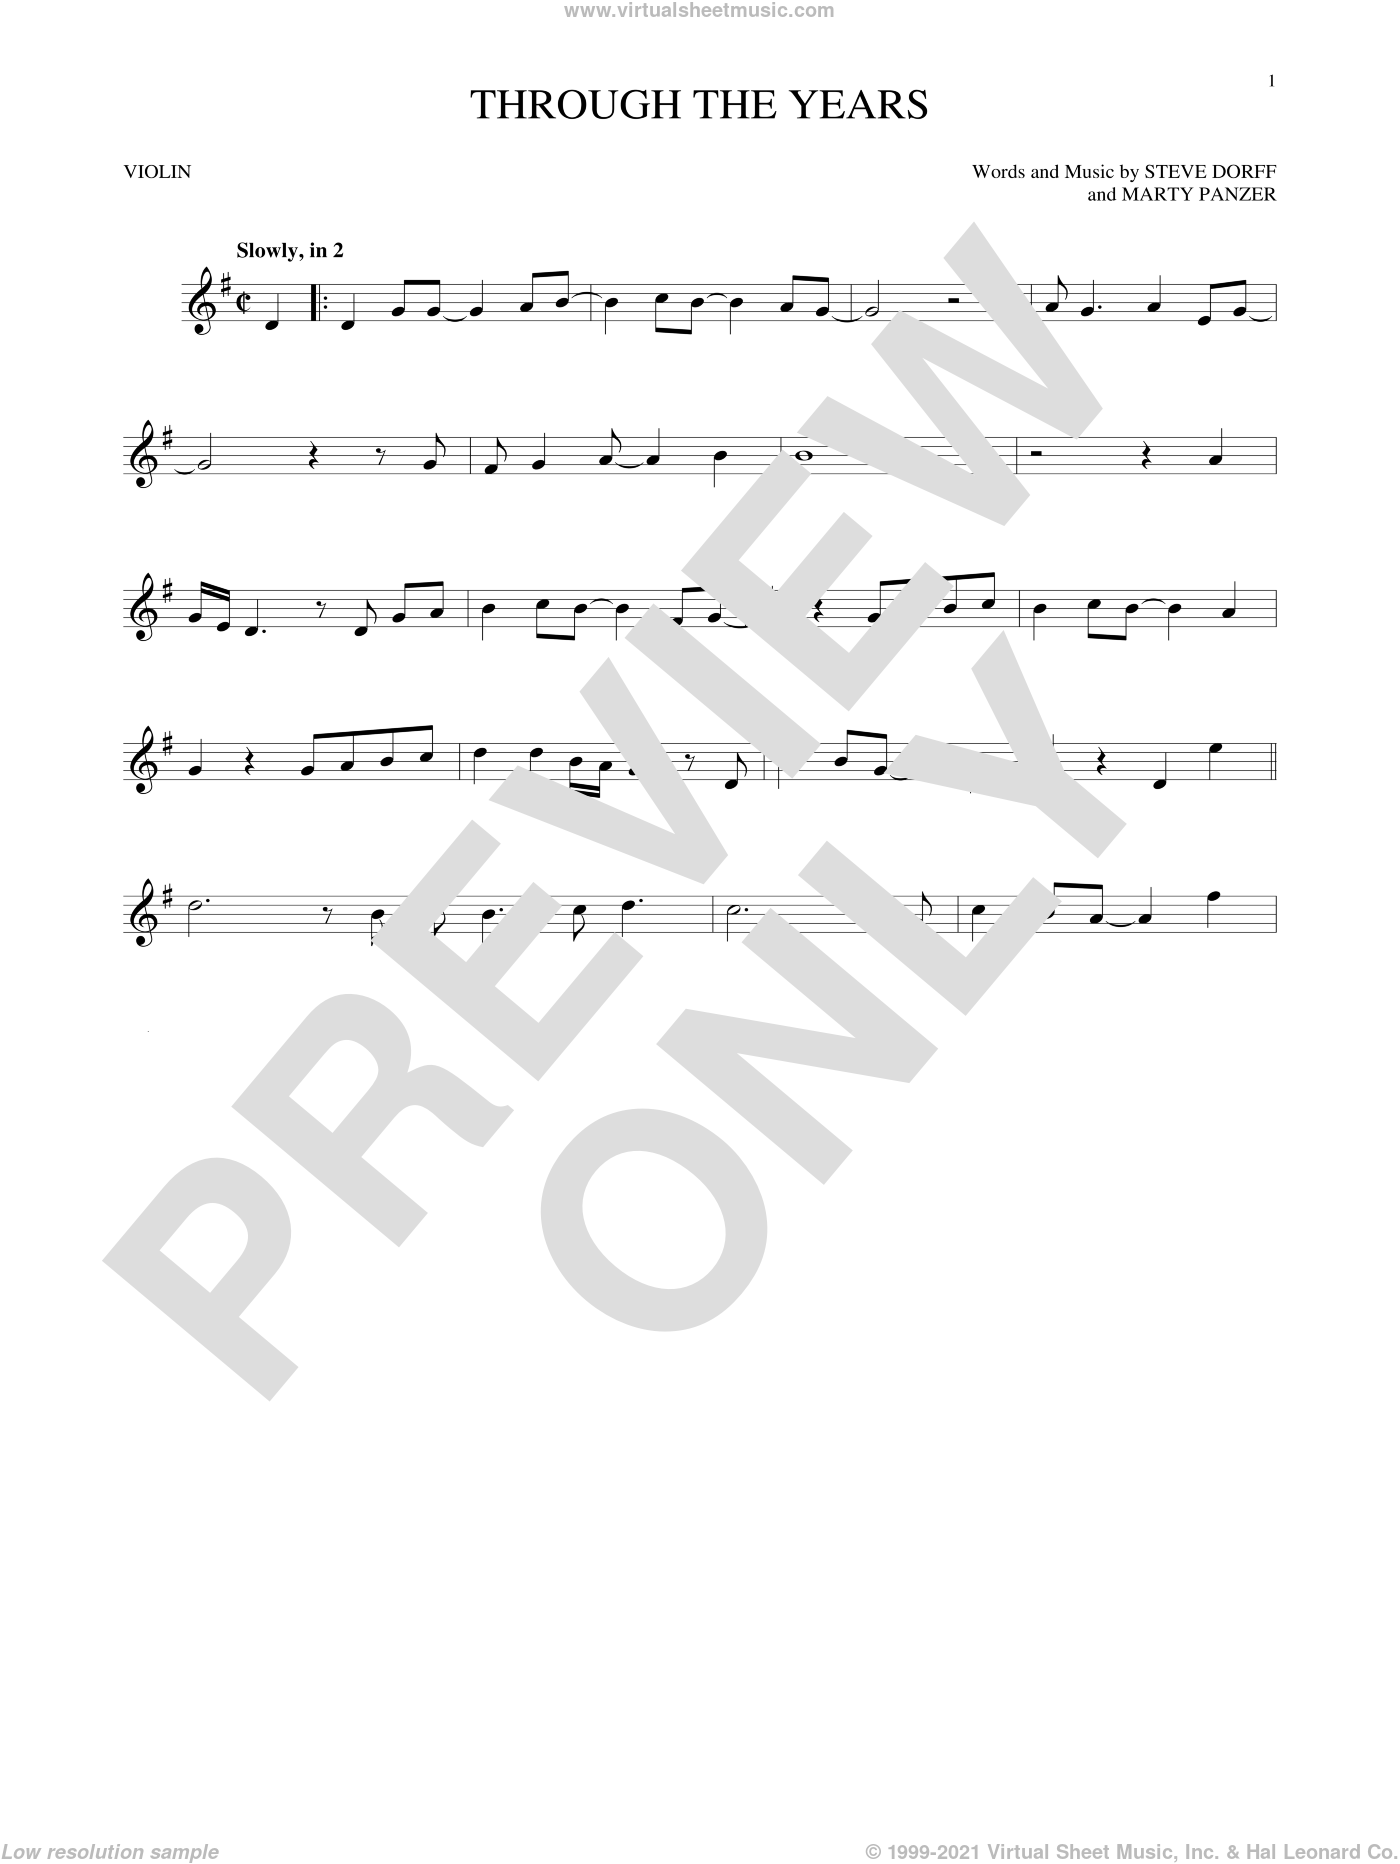 Through The Years sheet music for violin solo by Kenny Rogers, Marty Panzer and Steve Dorff, intermediate skill level